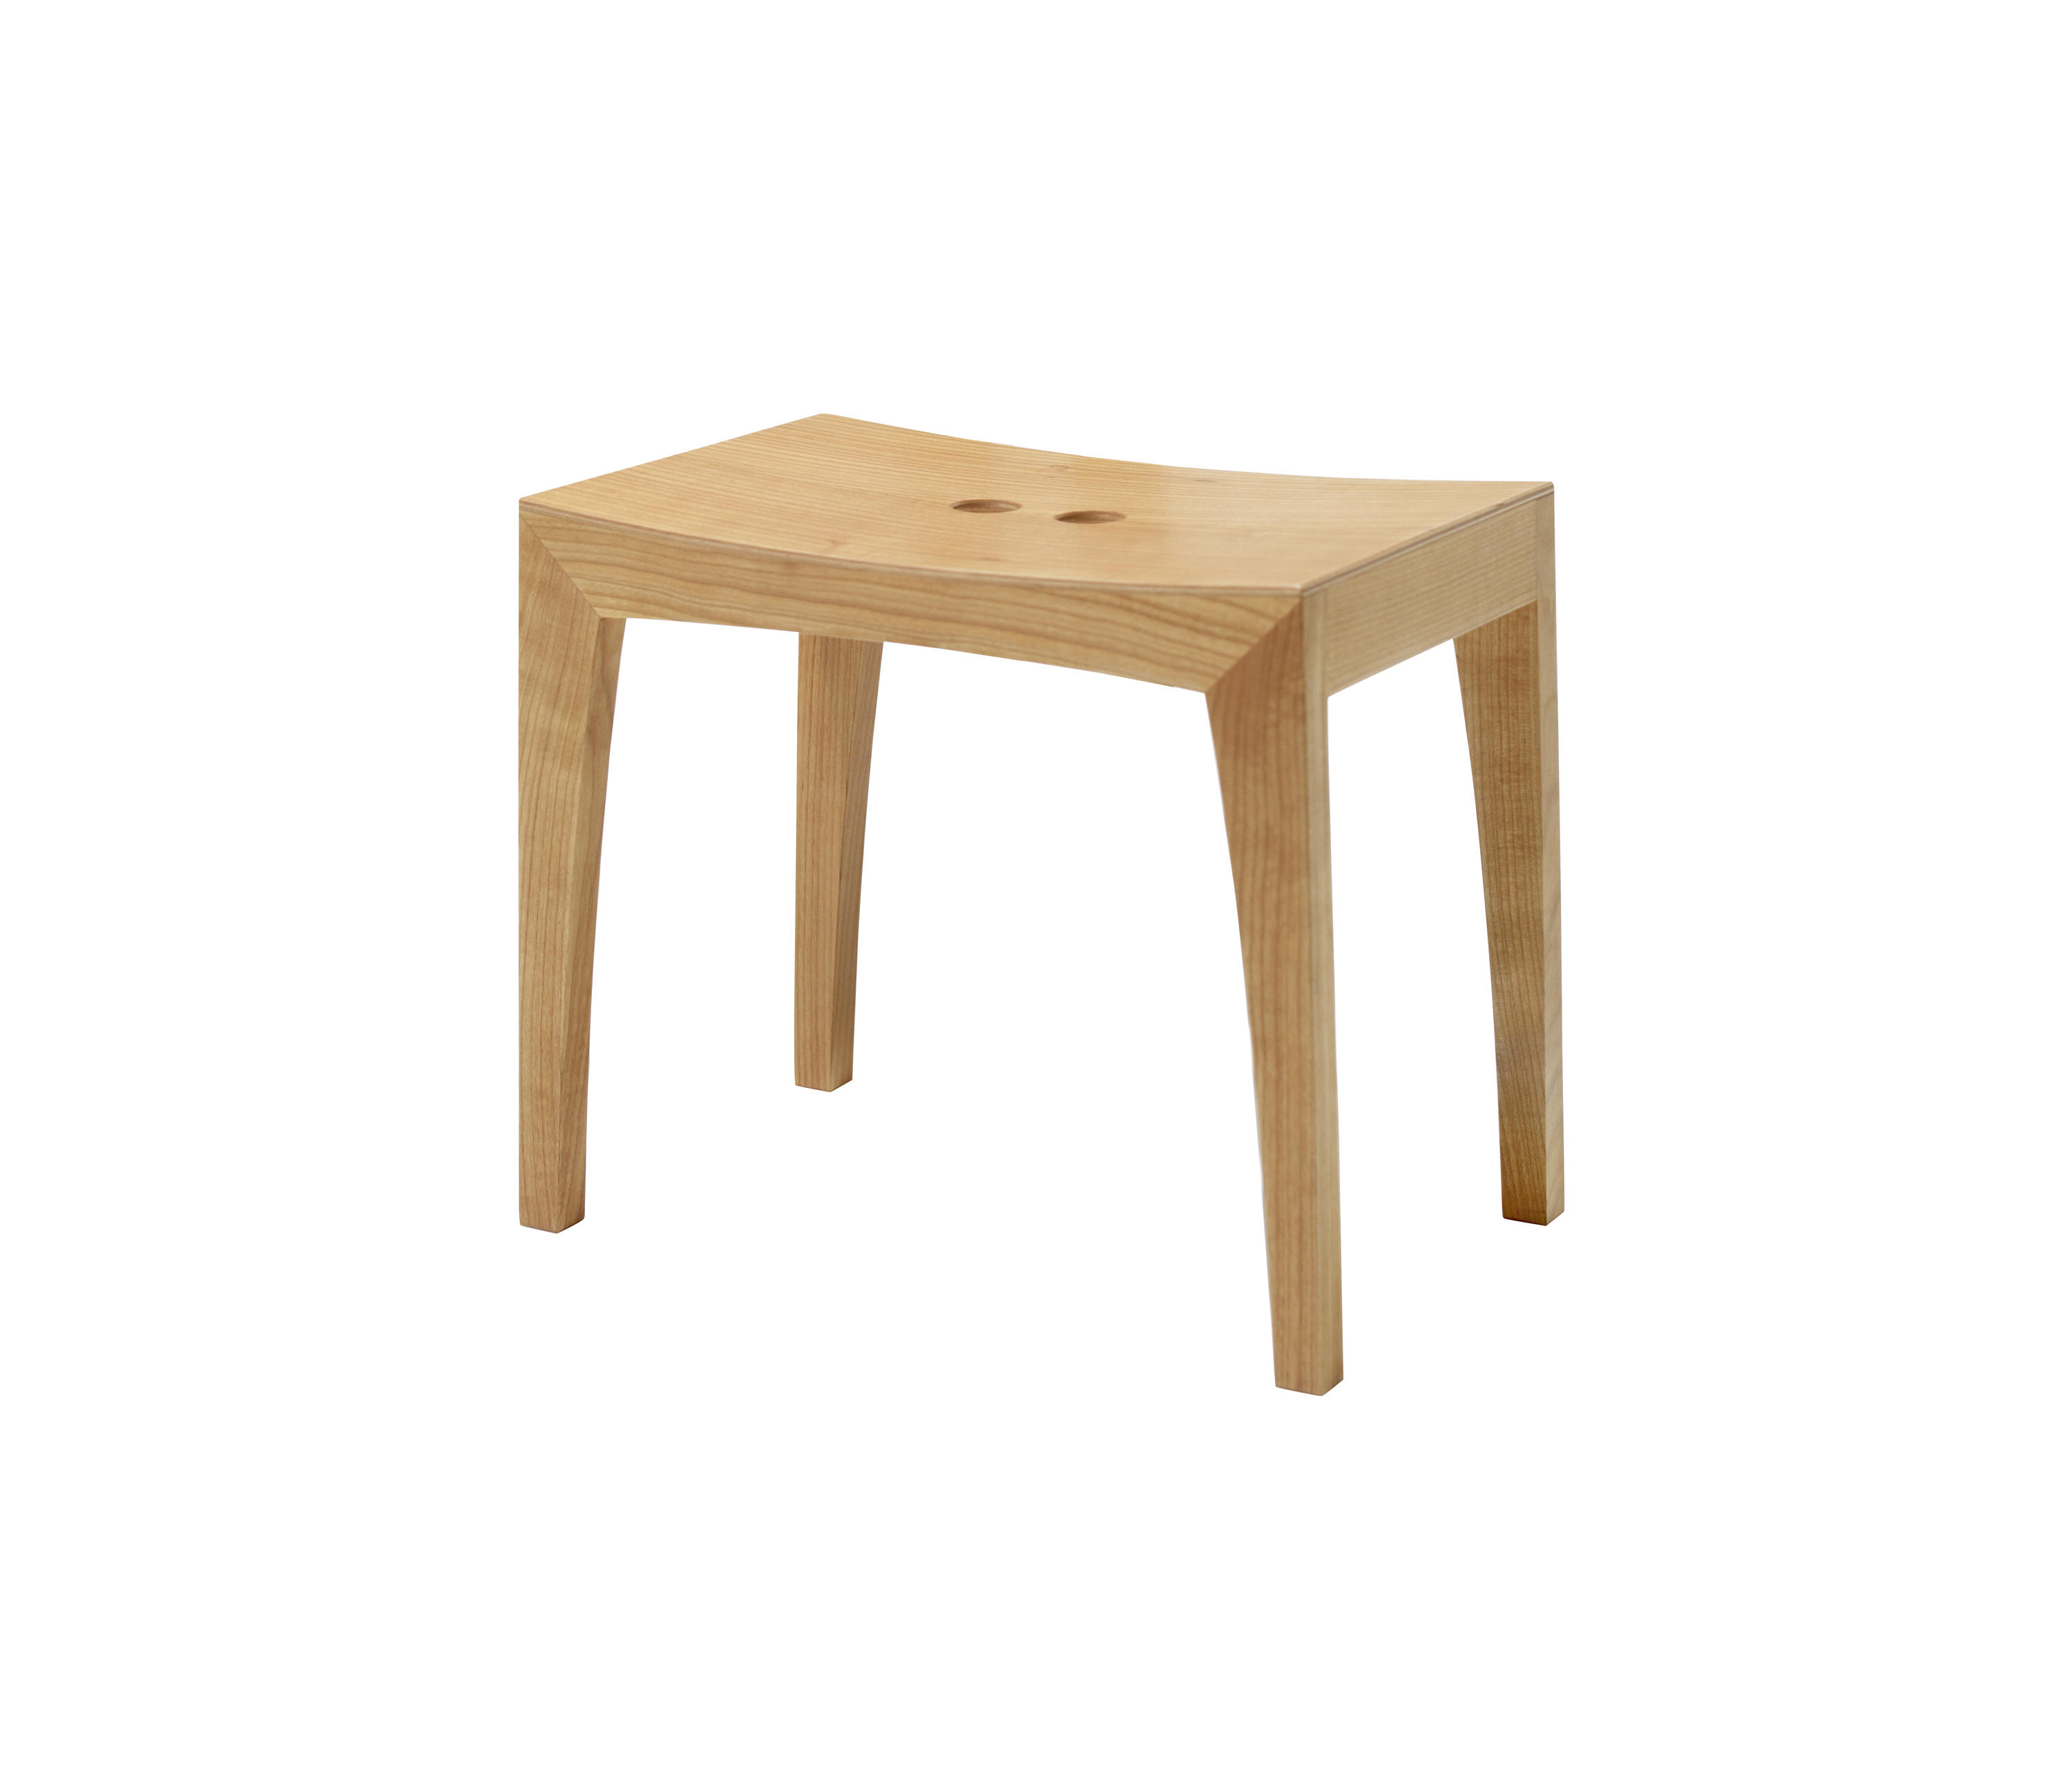 Hocker Schemel Otto1 Schemel Hocker Von Sixay Furniture Architonic